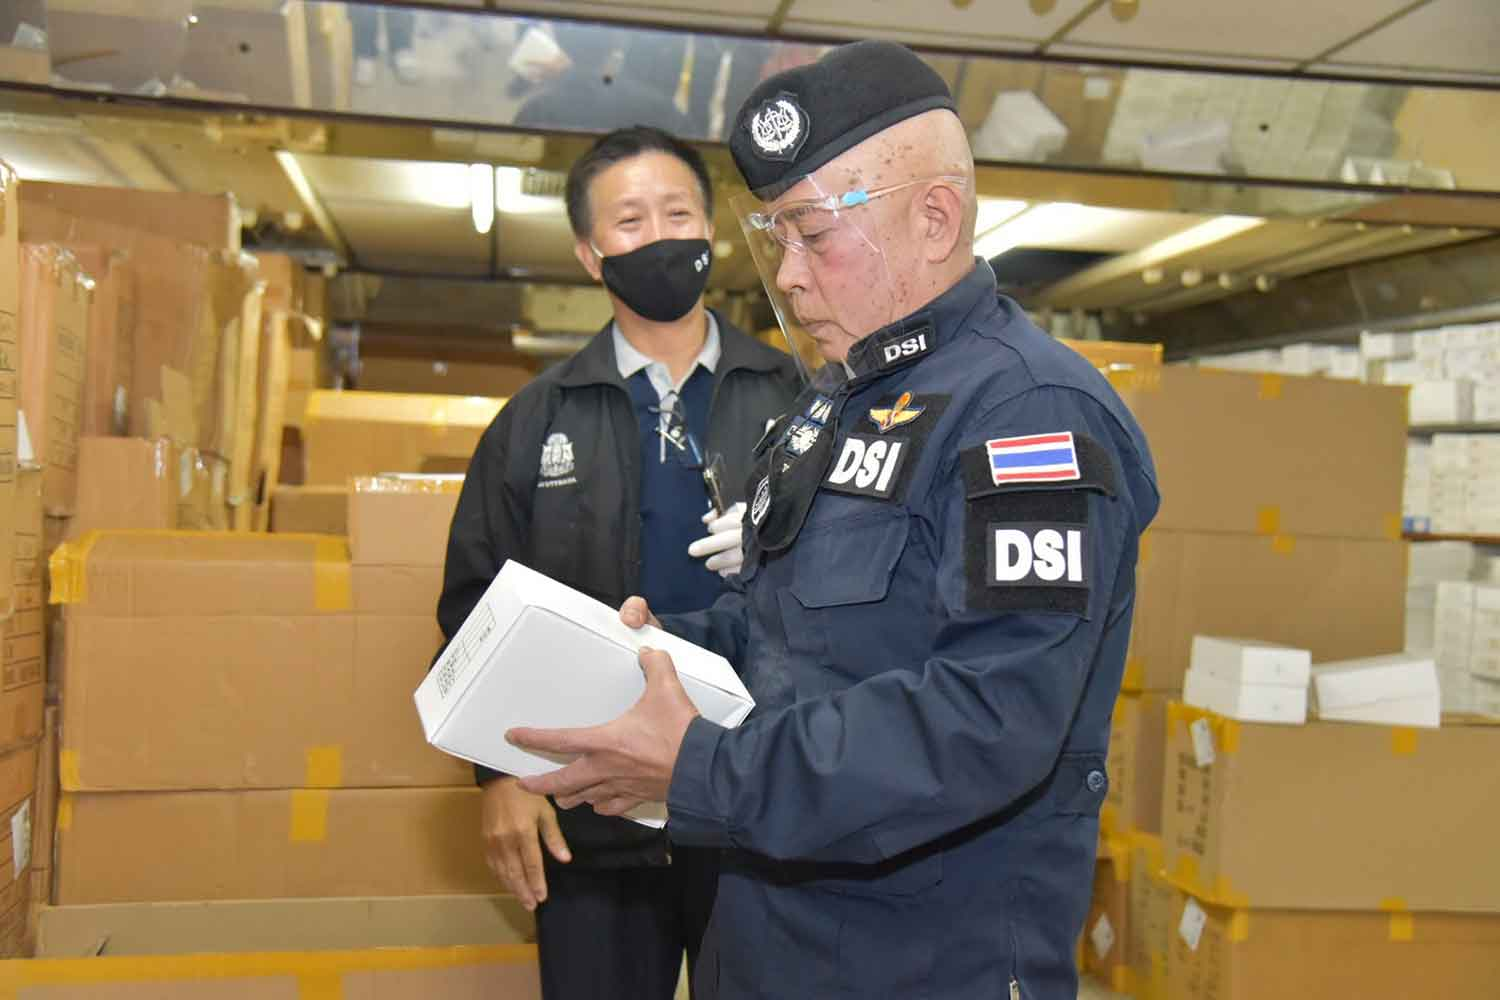 3m fake brandname eyeglasses seized